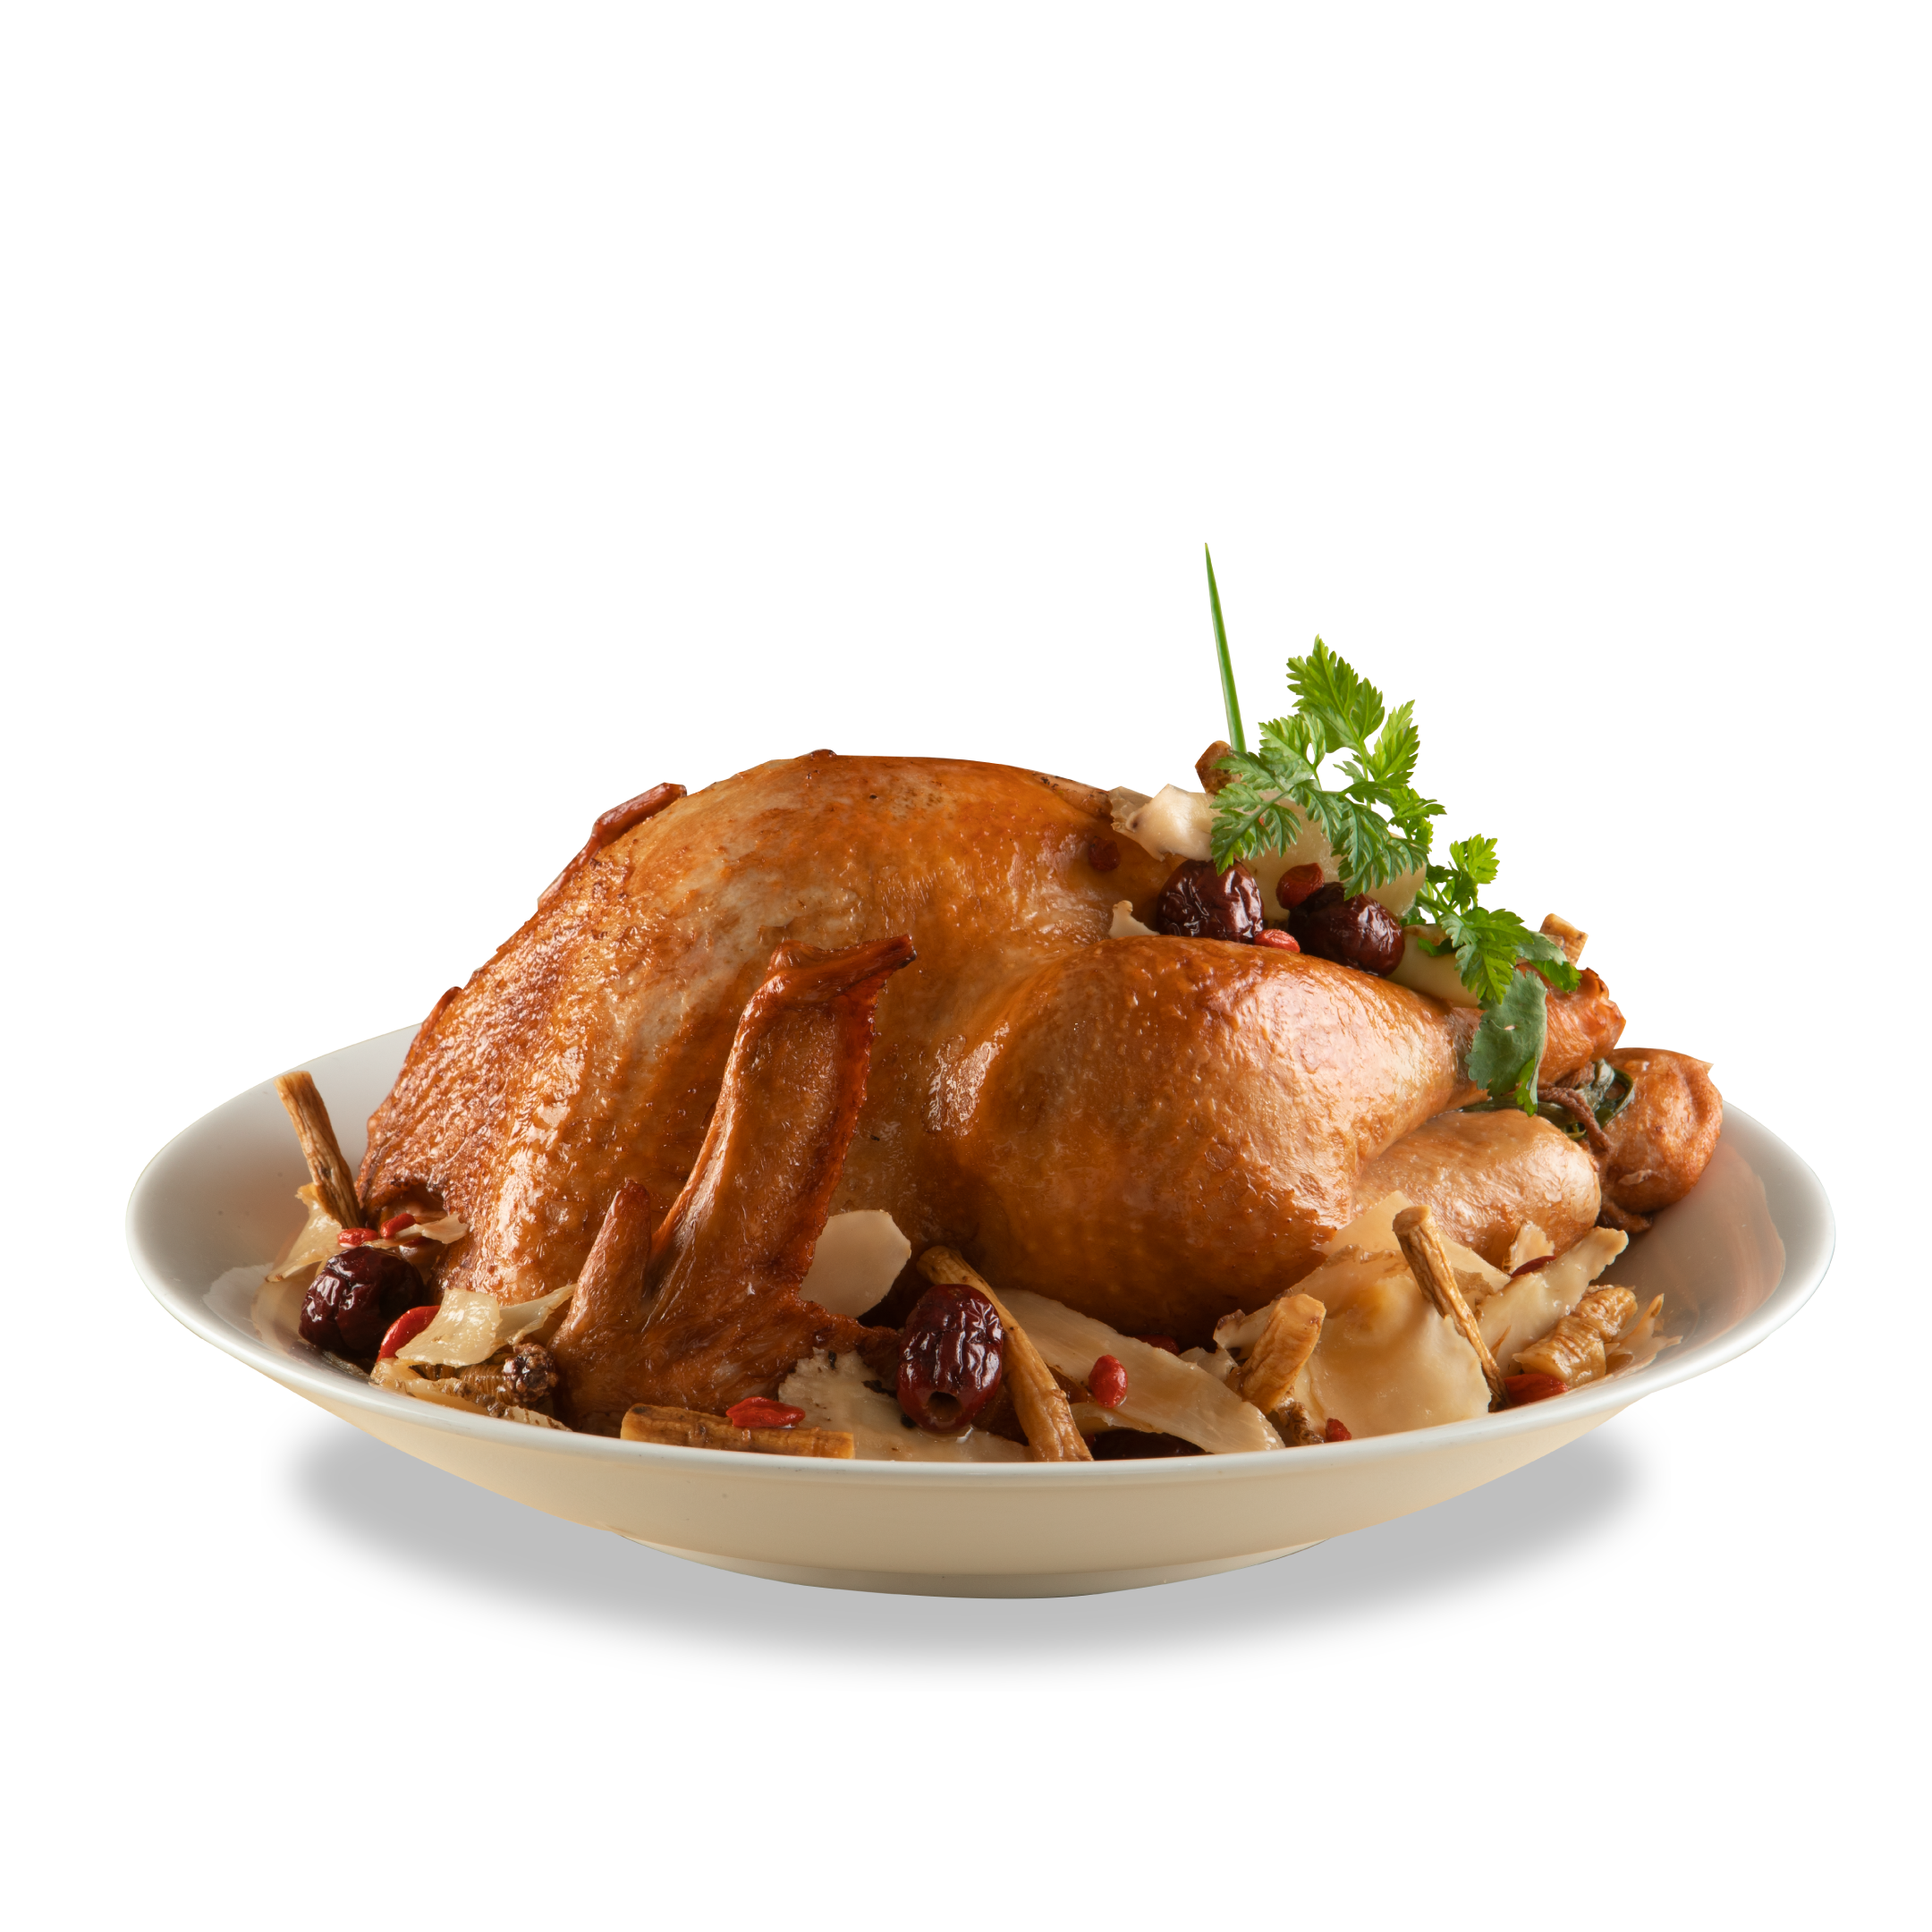 Emperor's Slow Braised Herbal Whole Turkey with Glutinous Rice Stuffing